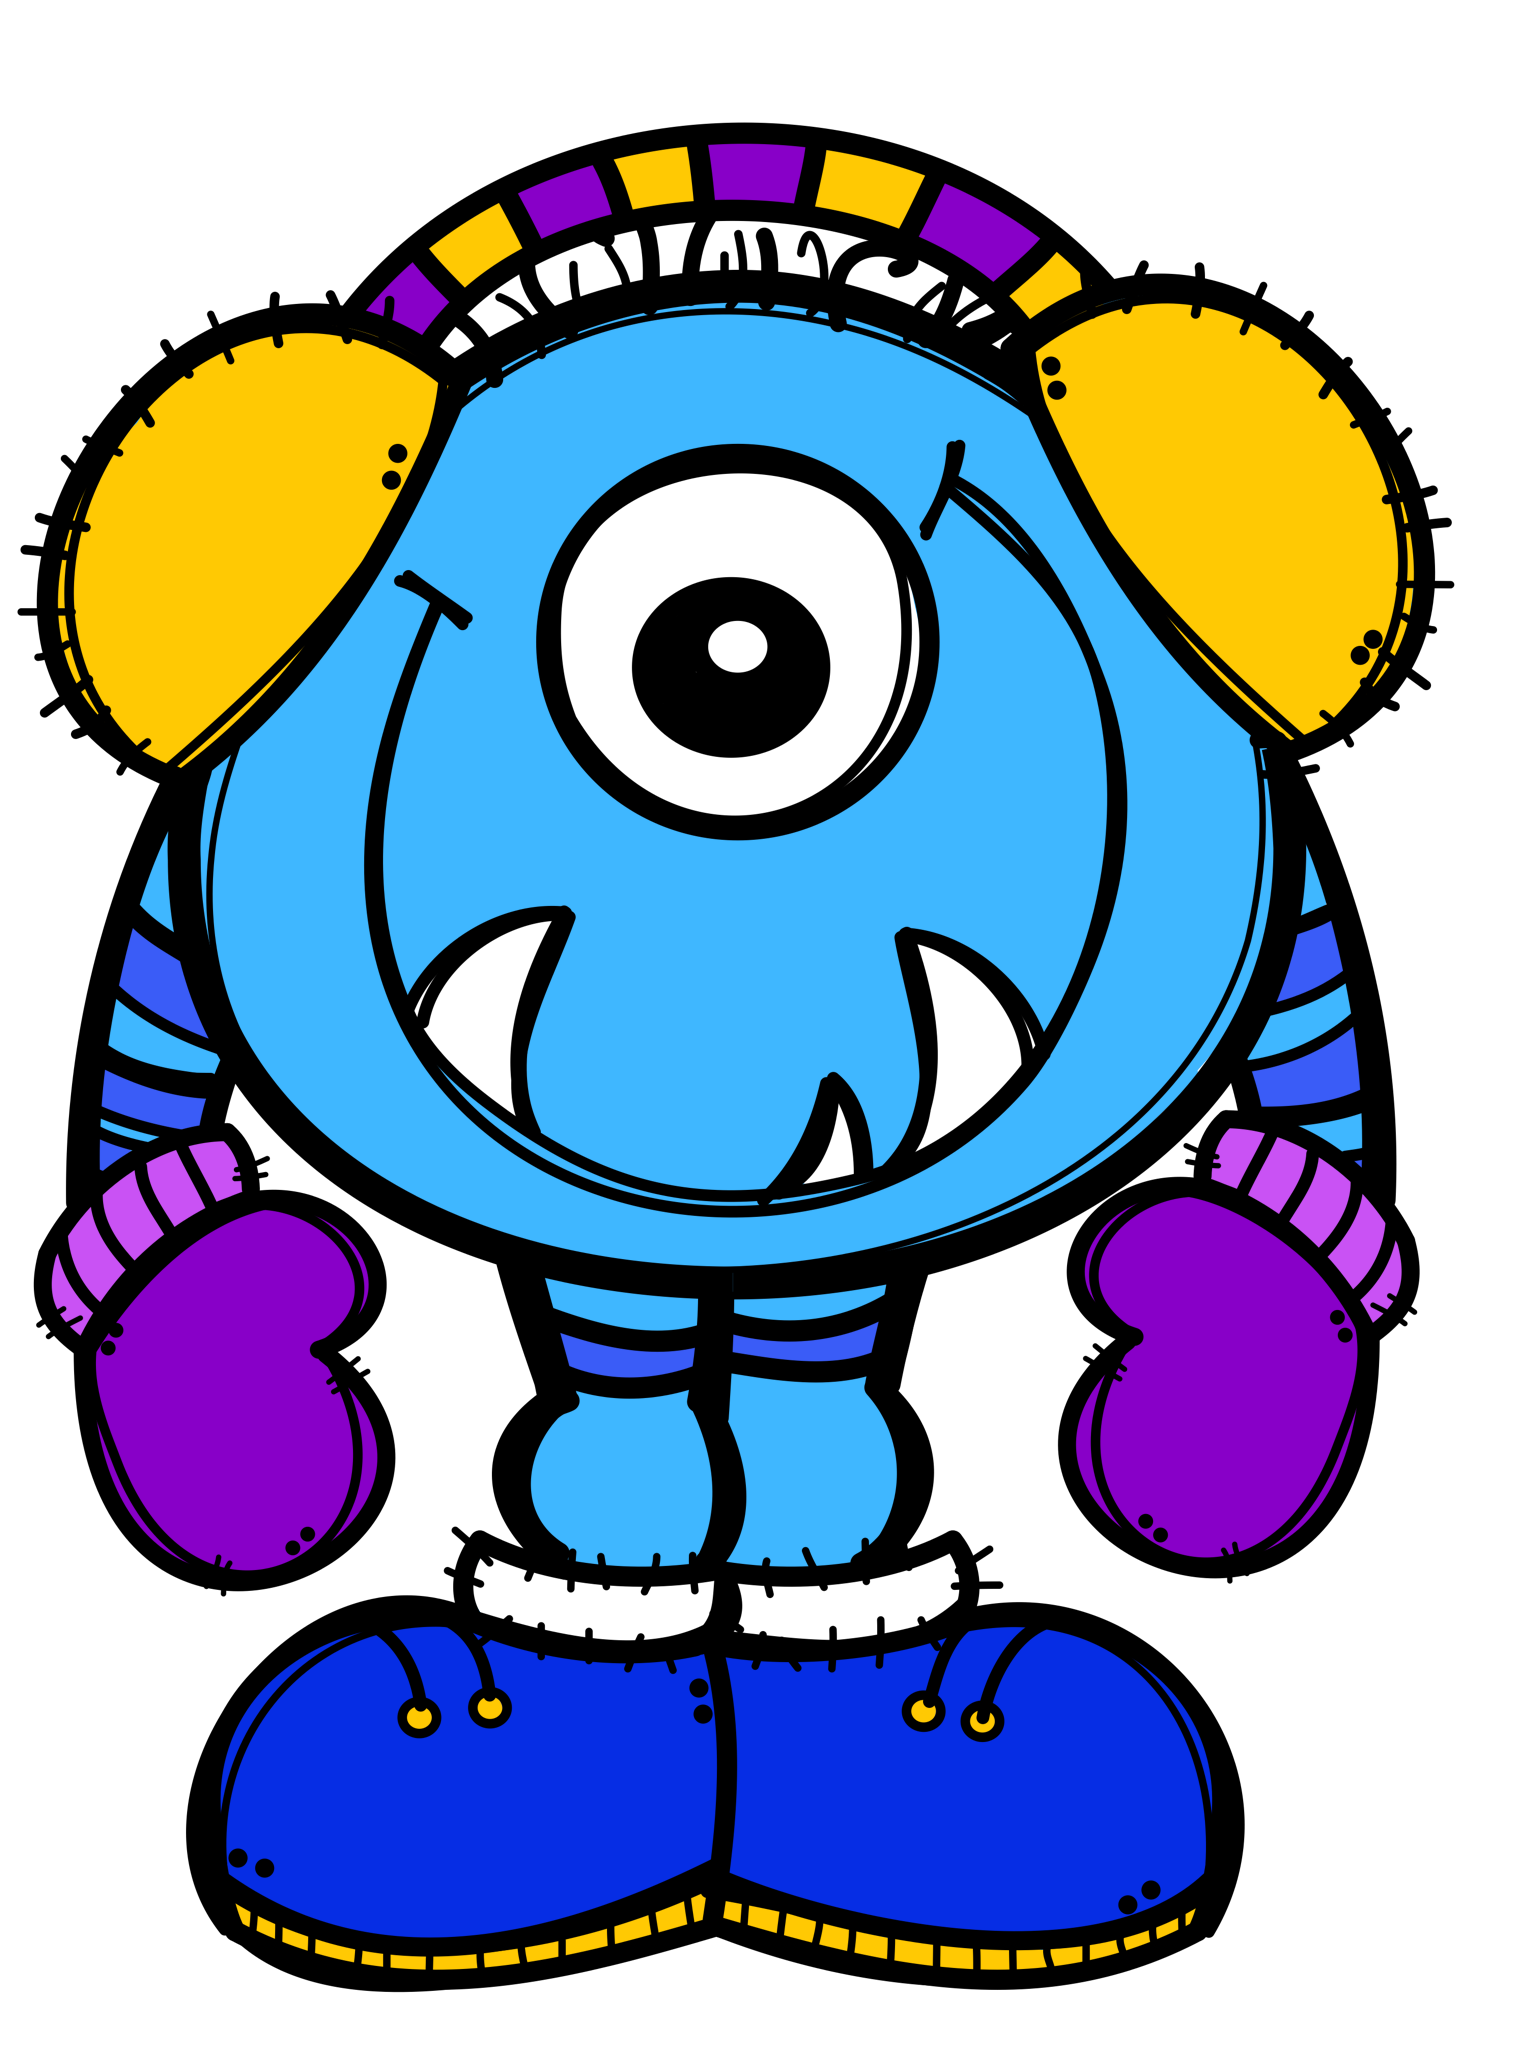 Ch b monsters imprimibles. Fear clipart monster in closet